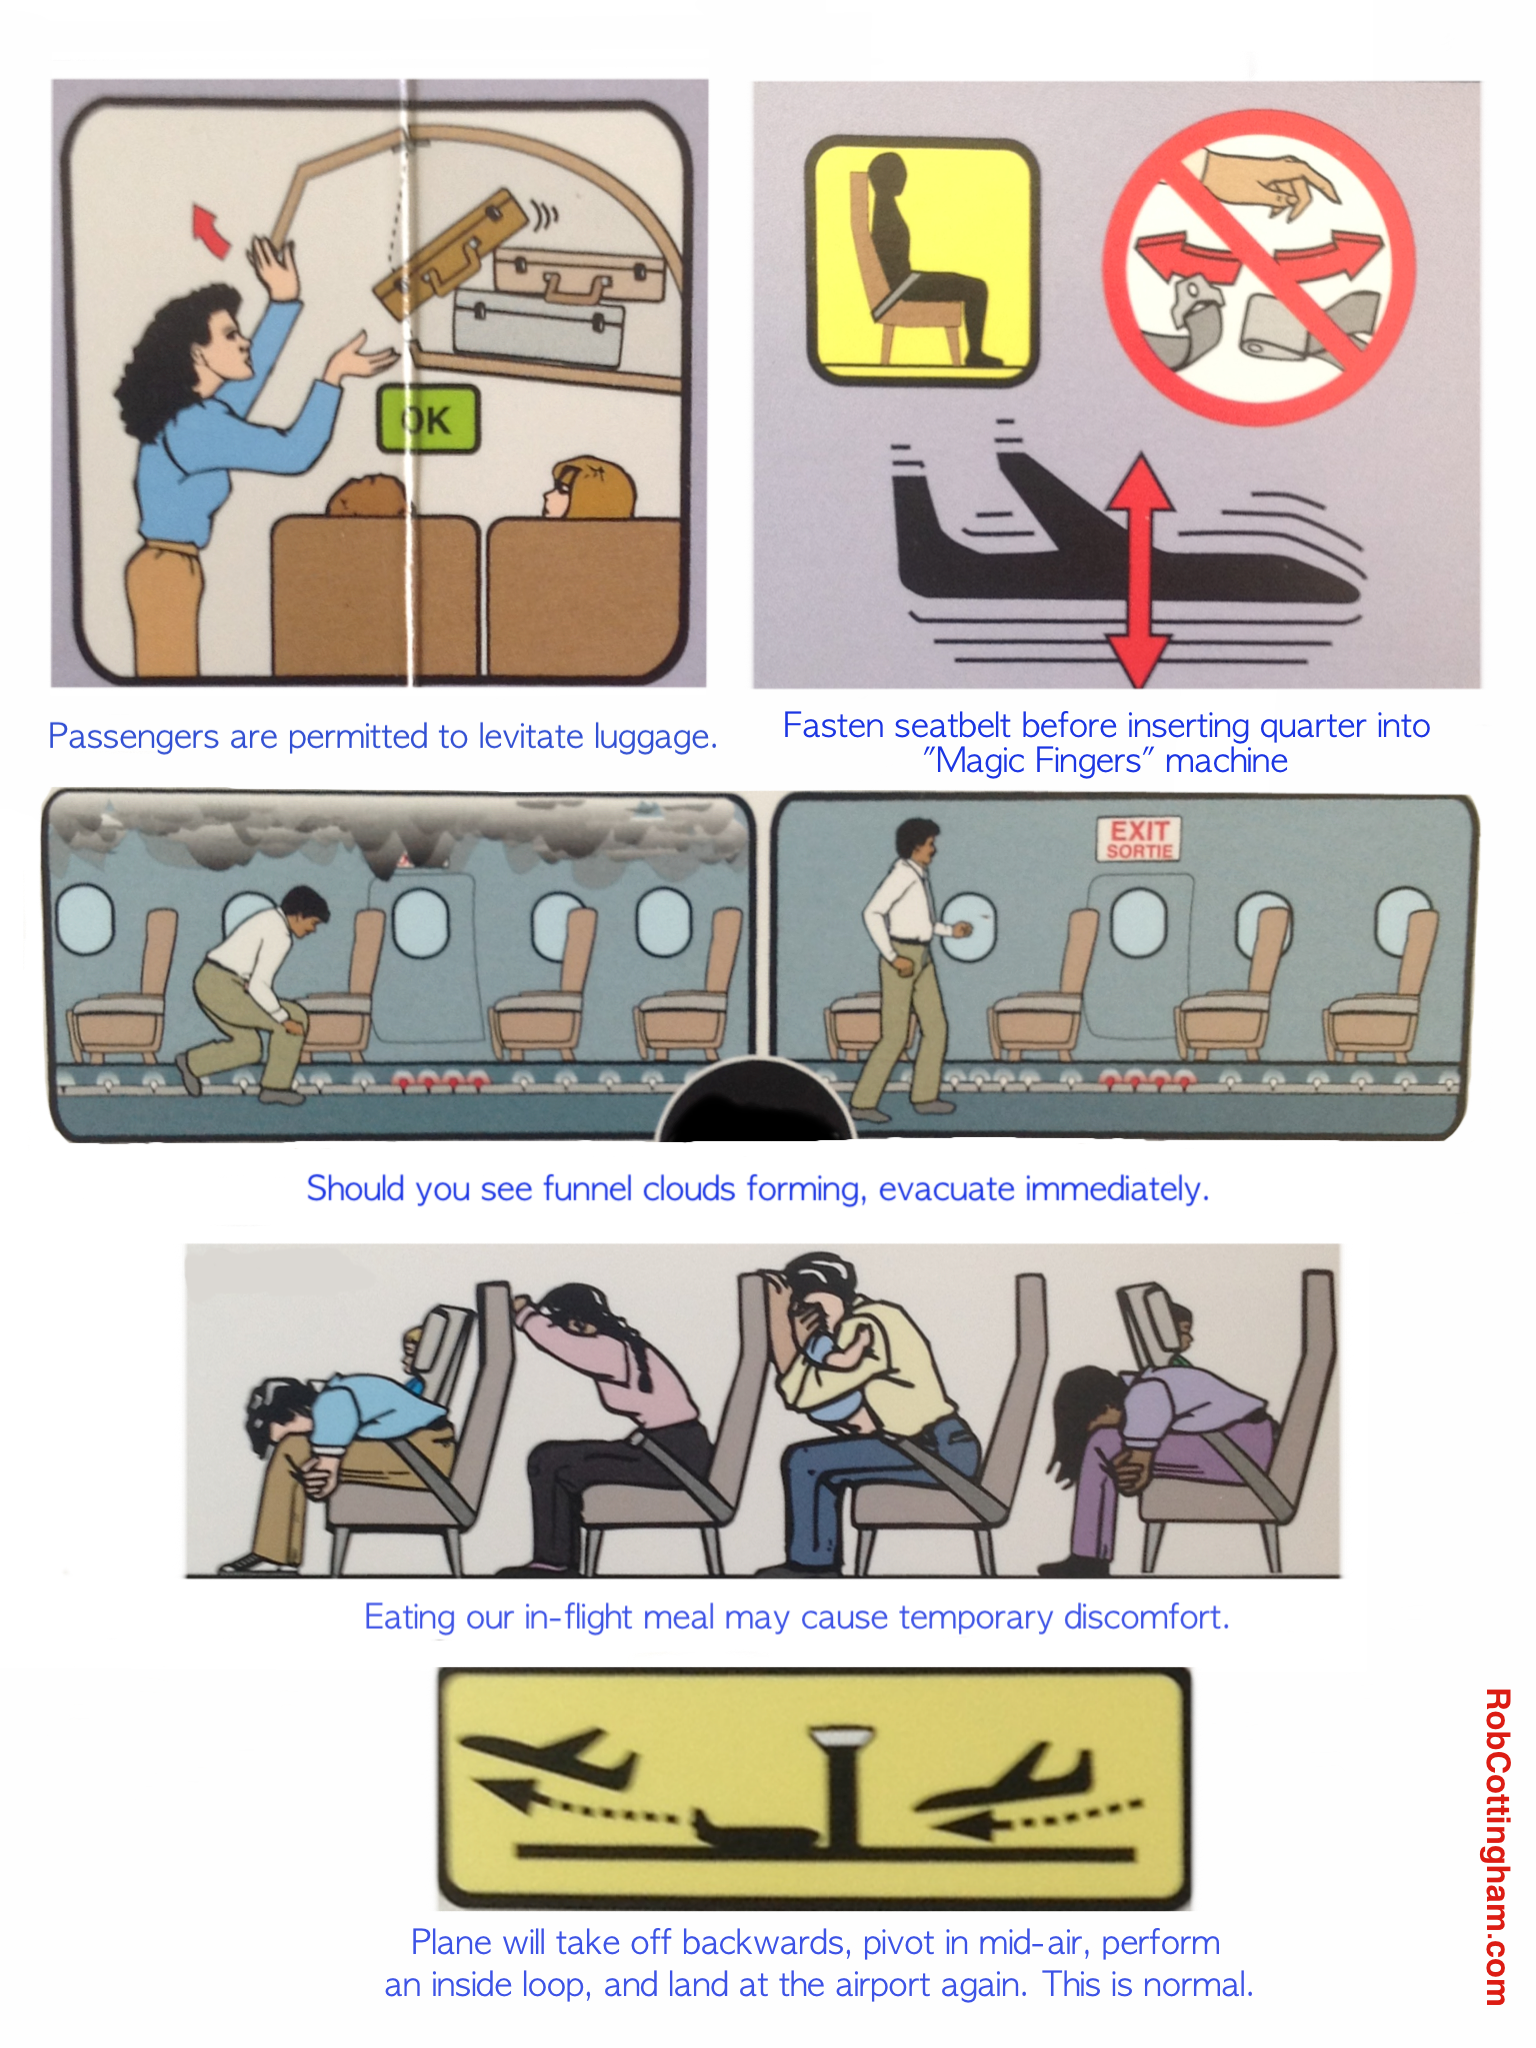 airplane safety instructions funny